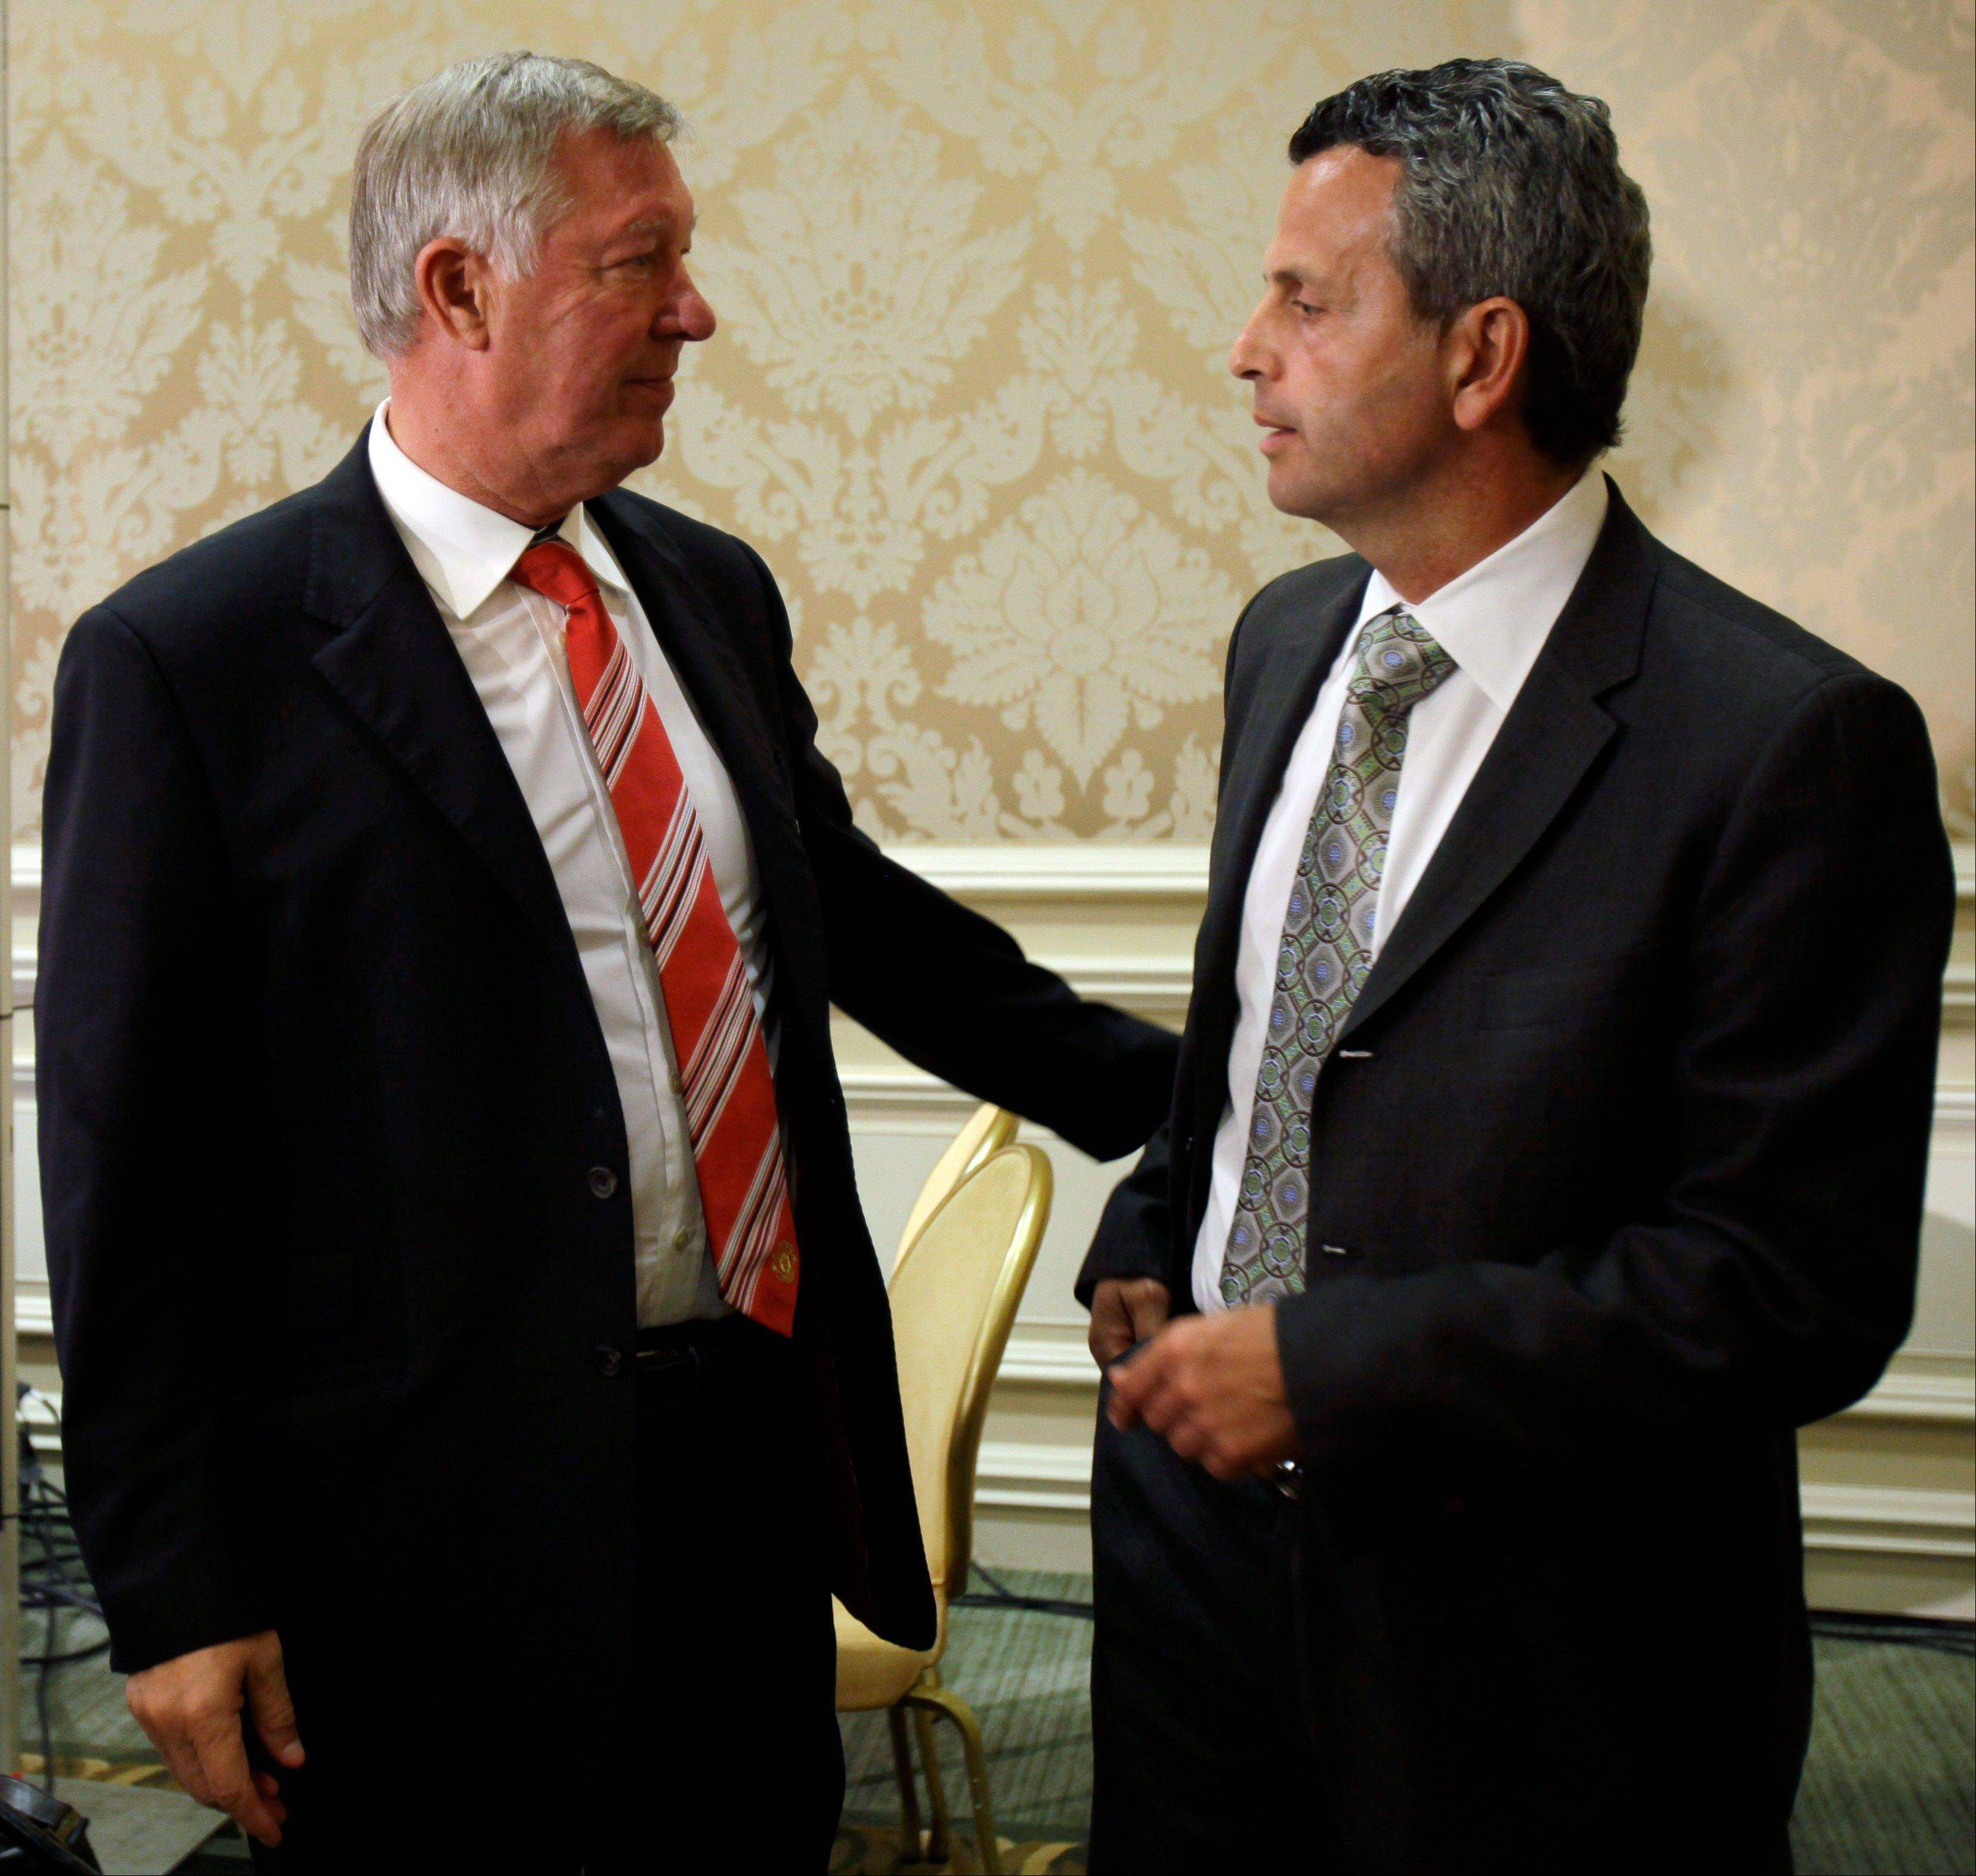 Manchester United manager Alex Ferguson, left, talks with Chicago Fire interim coach Frank Klopas after a news conference Thursday in Chicago.